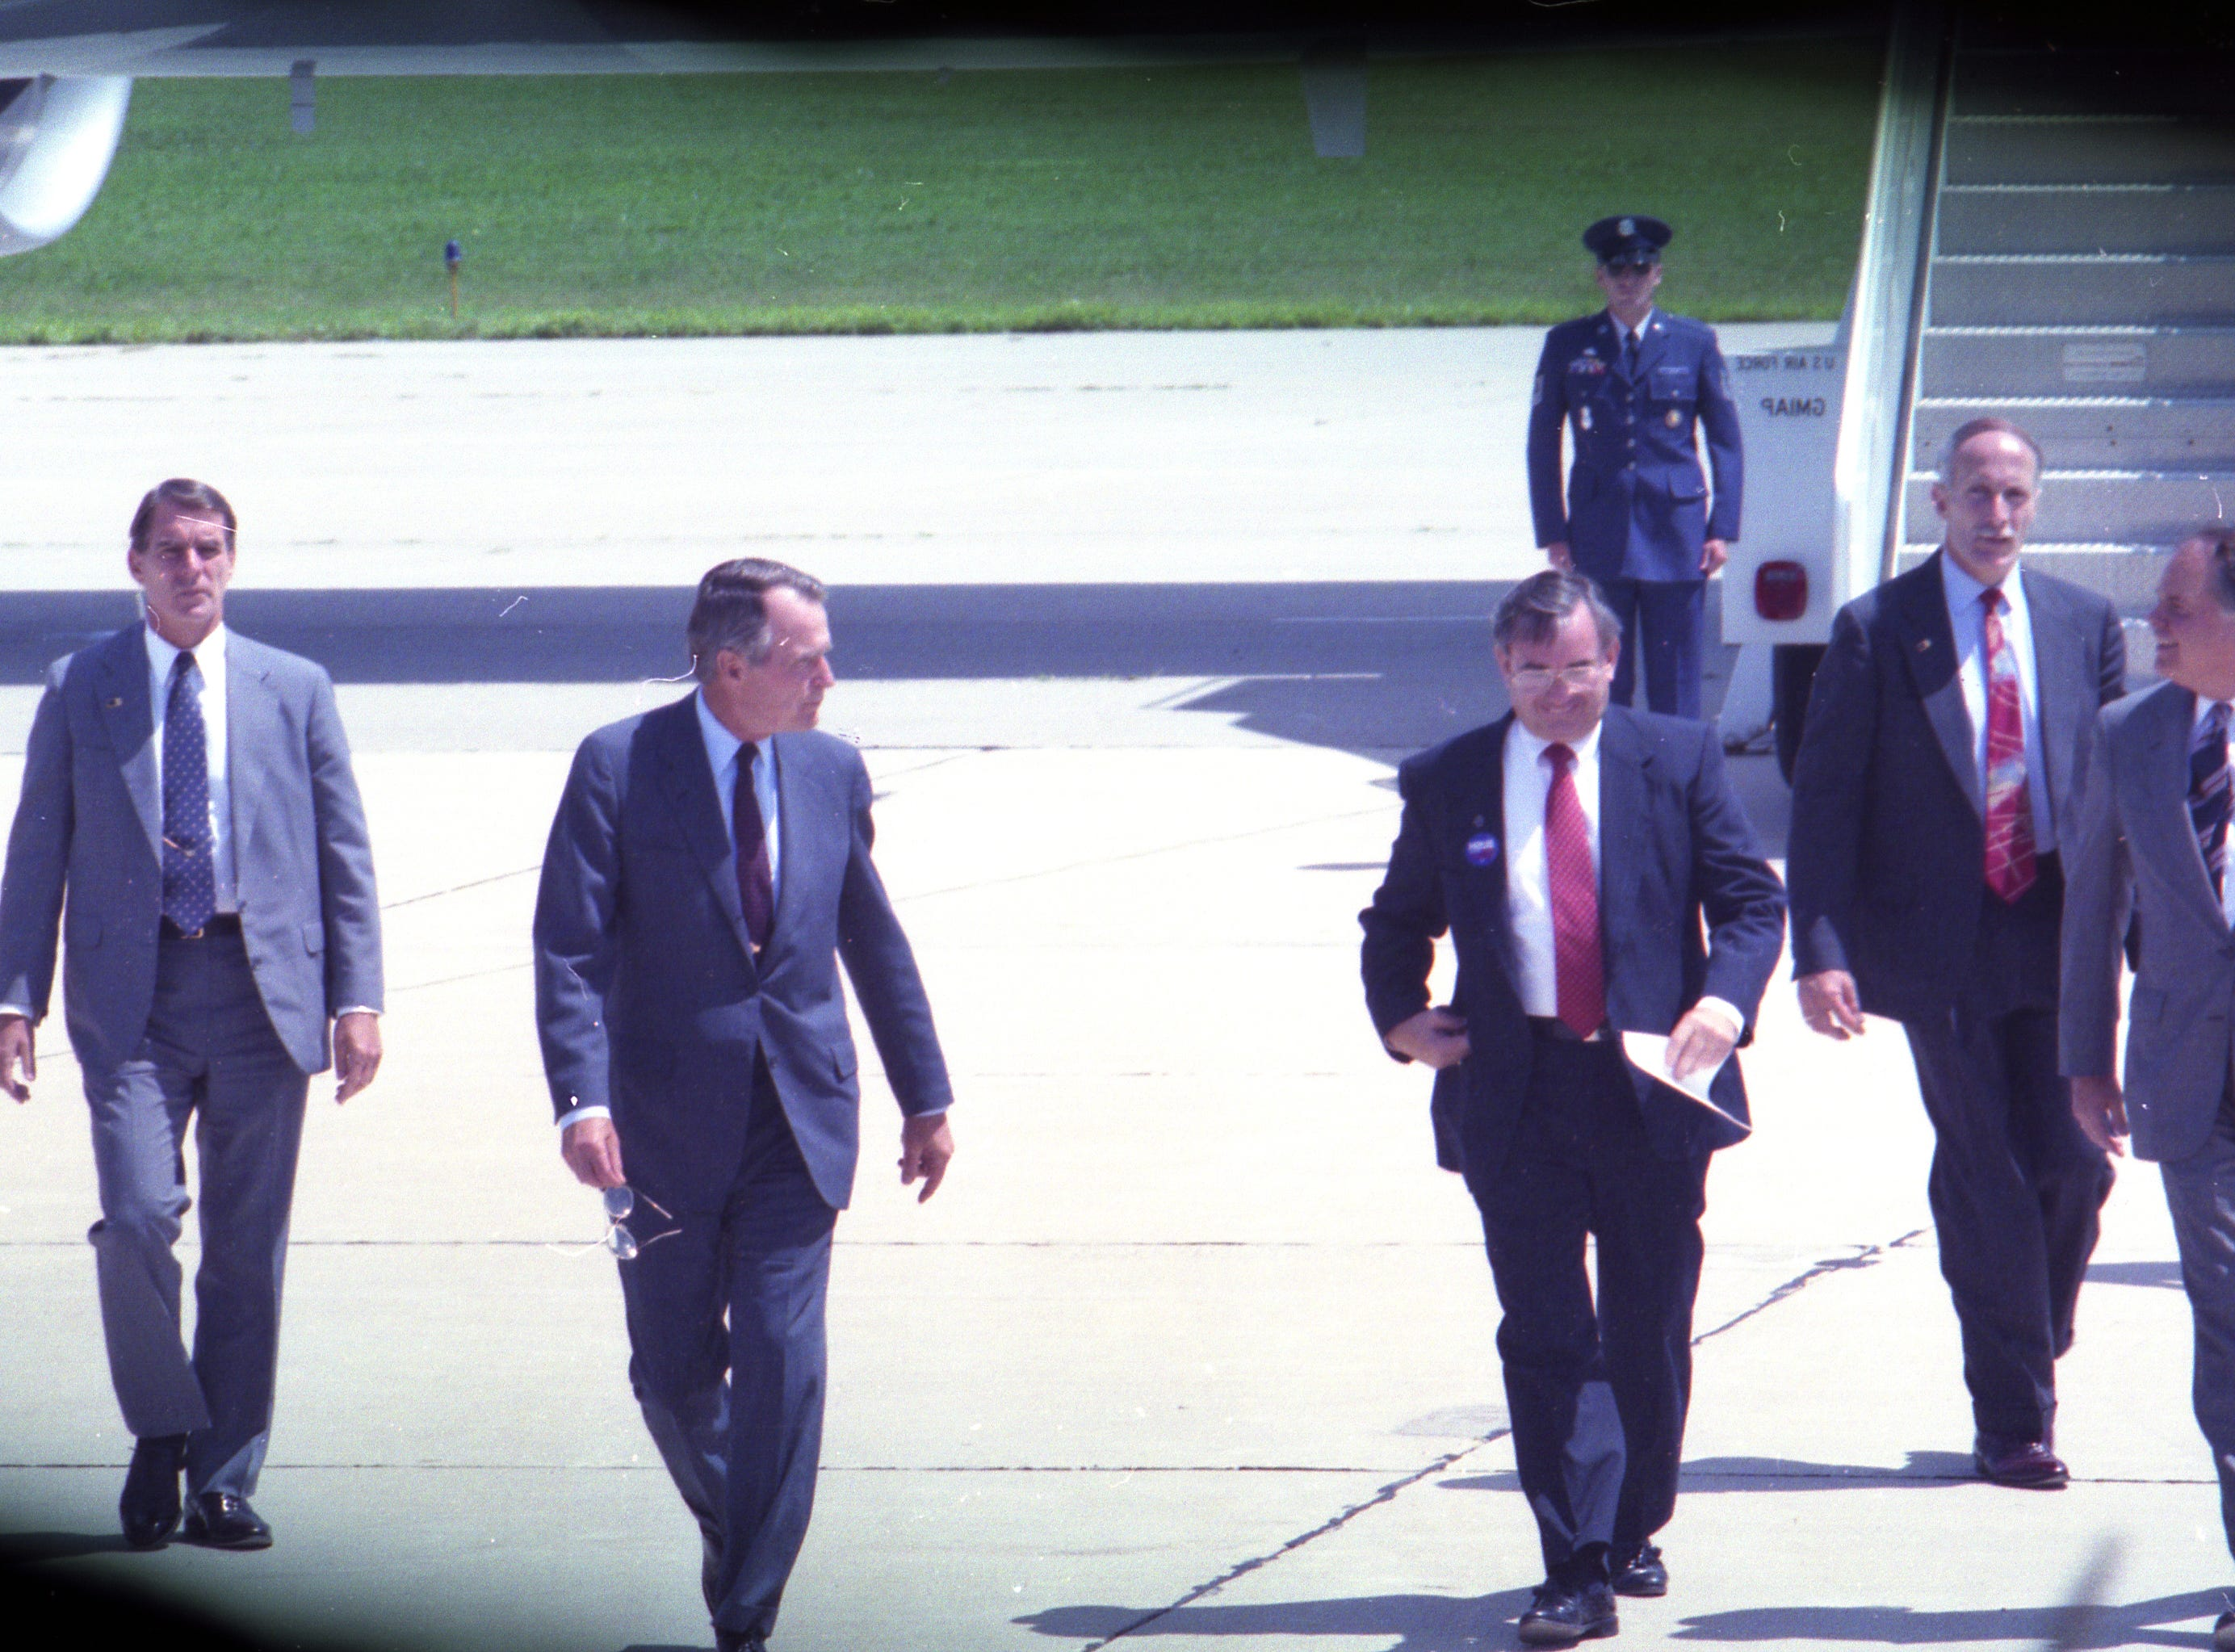 July 27, 1992 President George H. W. Bush and Gov. Tommy Thompson at the Outagamie County Airport. President George H. W. Bush spread a Republican campaign message in the Fox Cities and took time to greet some of the thousands of well-wishers at the Outagamie County Airport. Post-Crescent photo by Mark Courtney